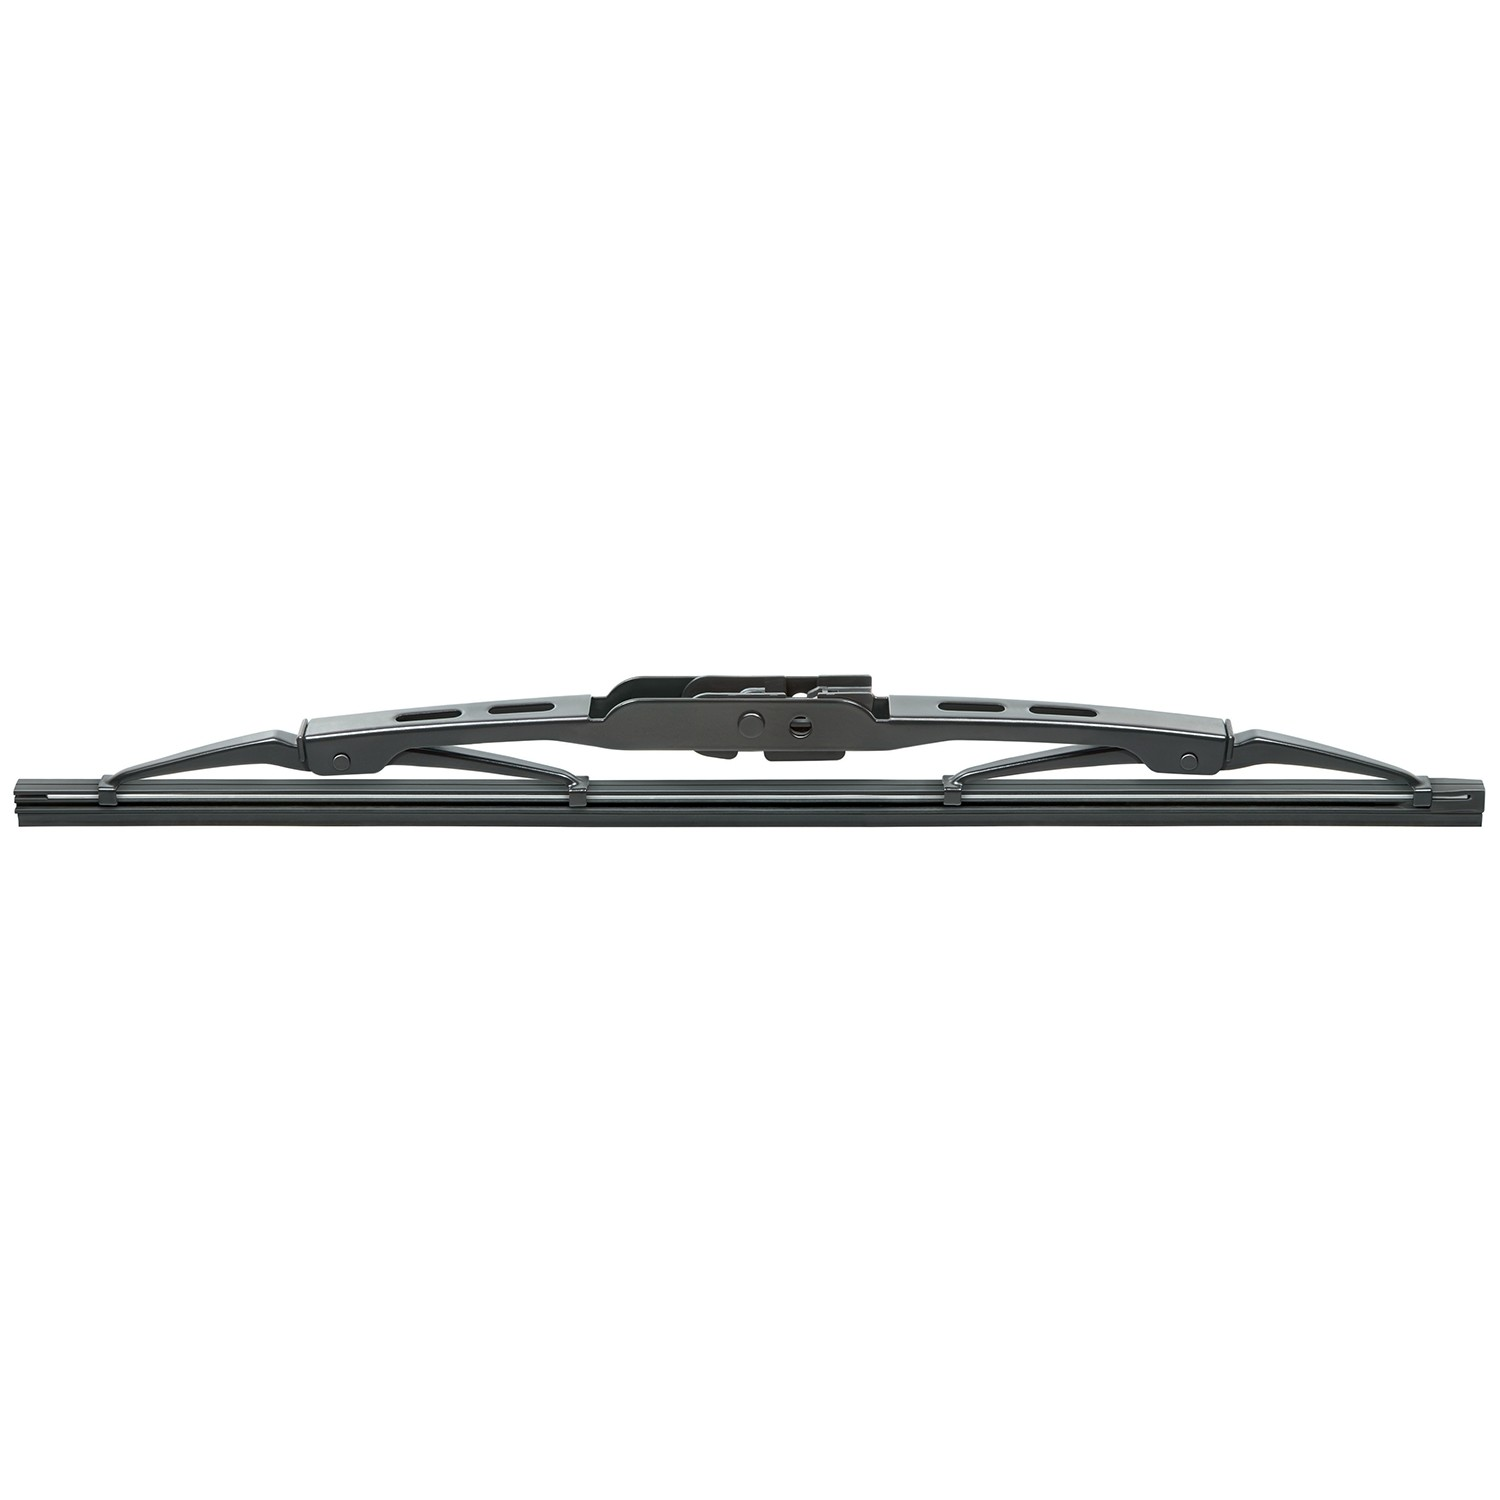 TRICO - Windshield Wiper Blade - TRI 30-130